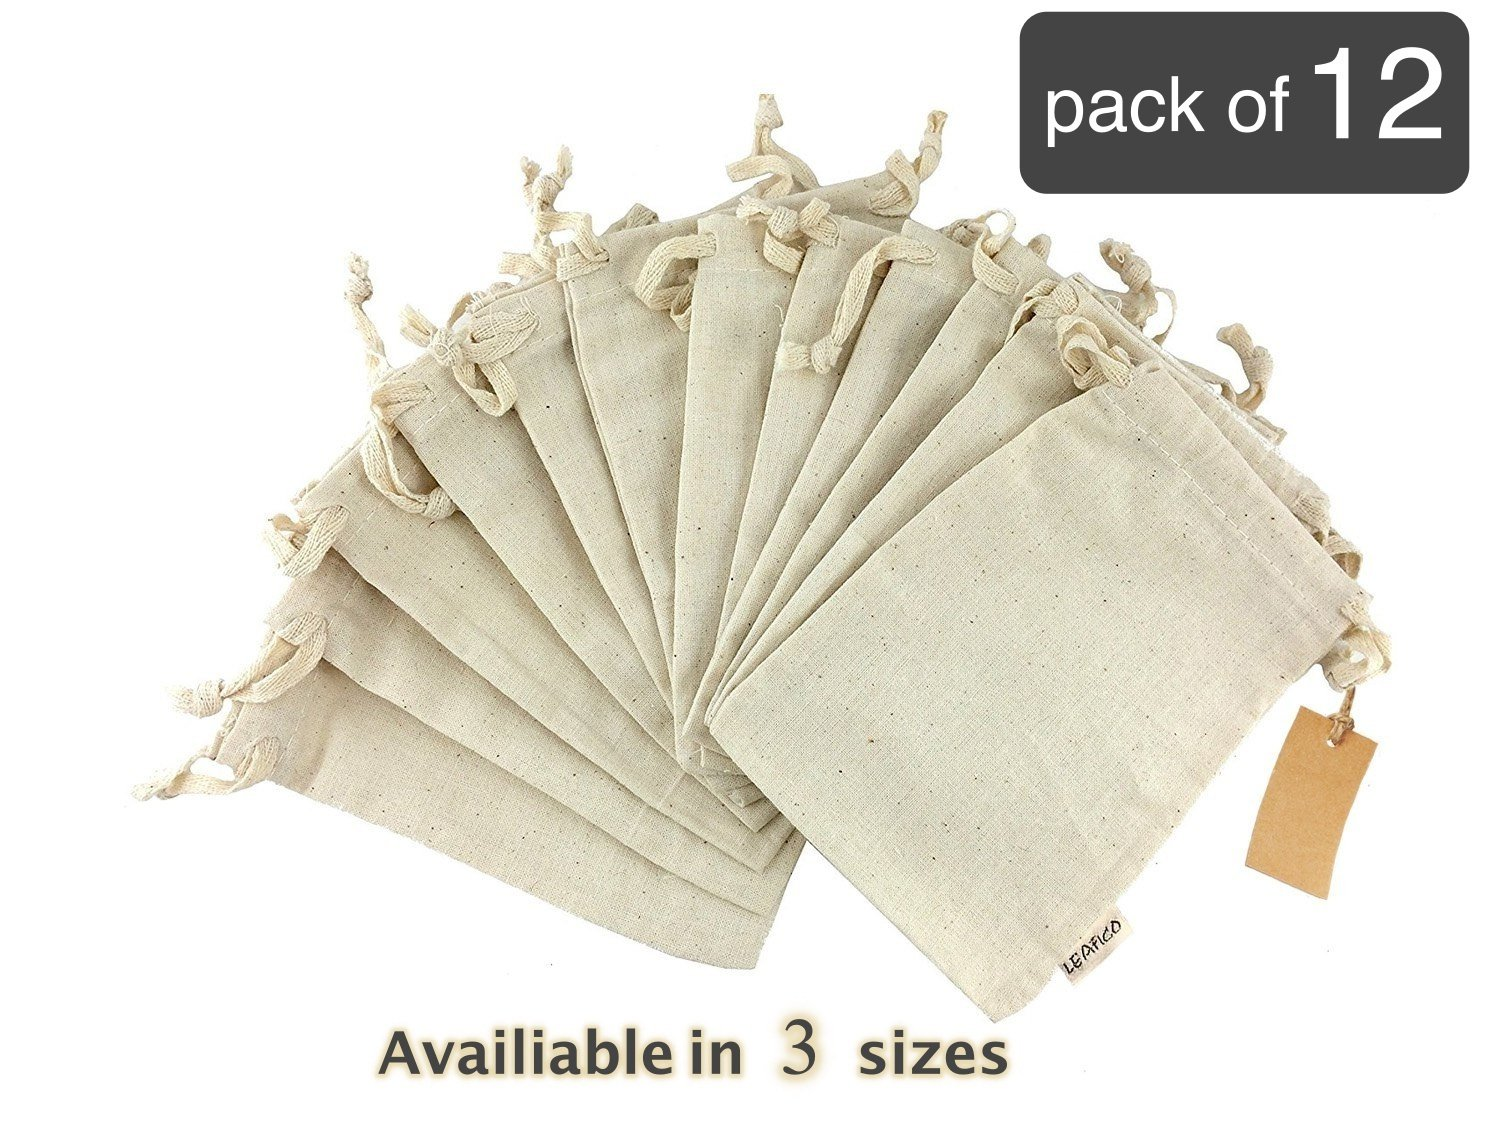 Eco bags, Reusable Grocery Bags Multipurpose Muslin Bags With Drawstring | Large 10x12 Inches, Sachet Bags, Canvas Bags, Vegetable and Bread Bags, Fabric Produce Bags, Linen Bag, 12 Count Pack Leafico